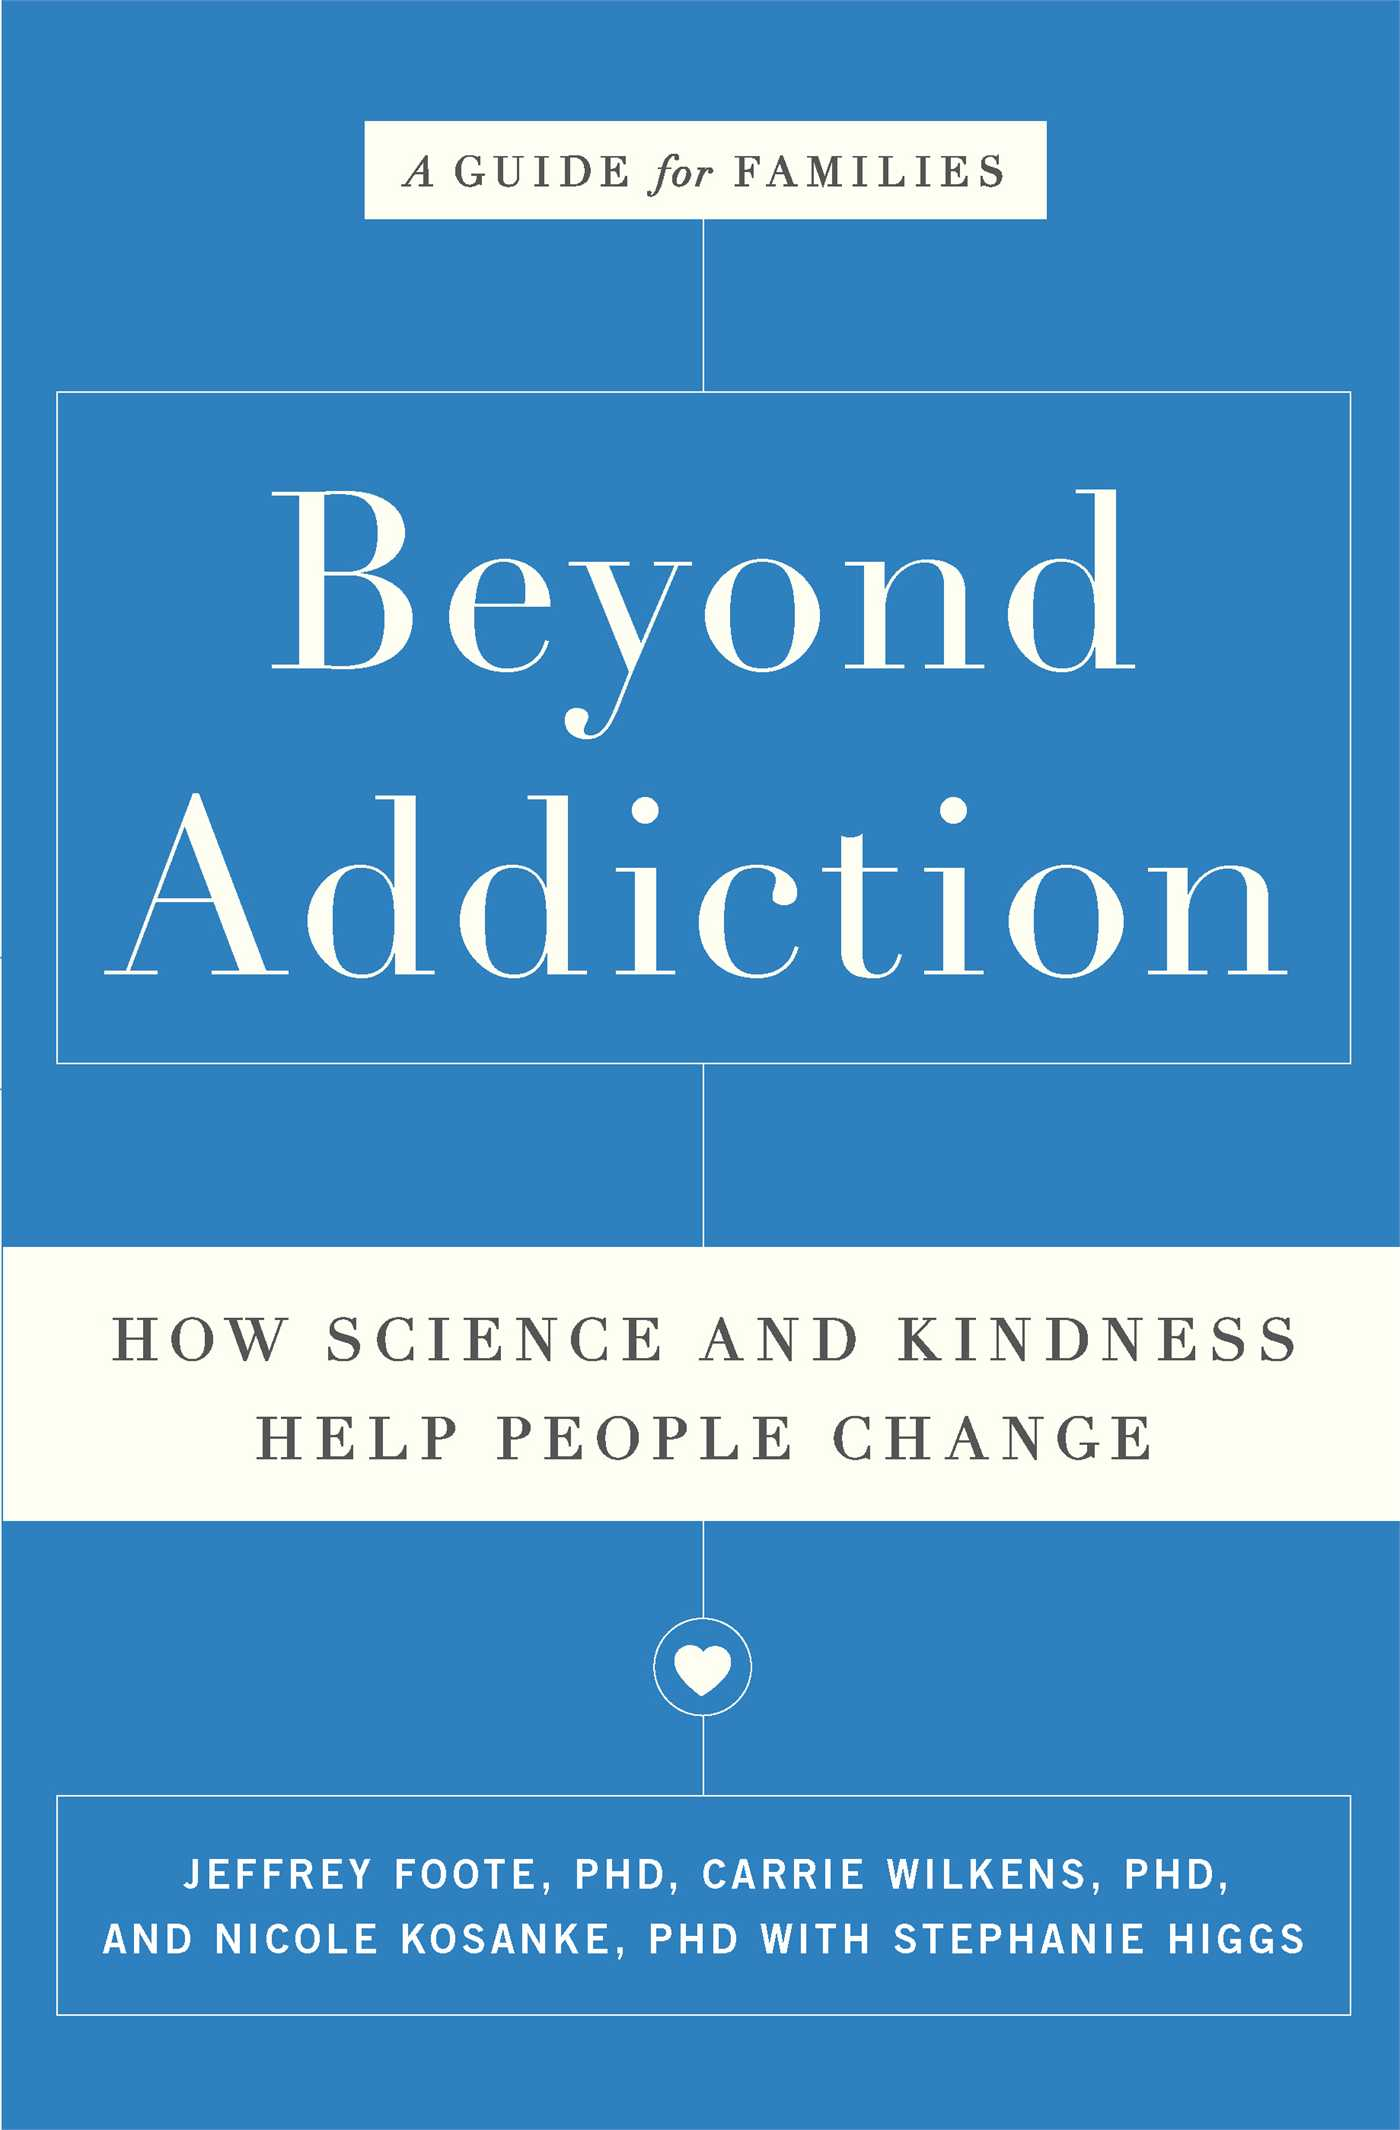 Beyond-addiction-9781476709475_hr